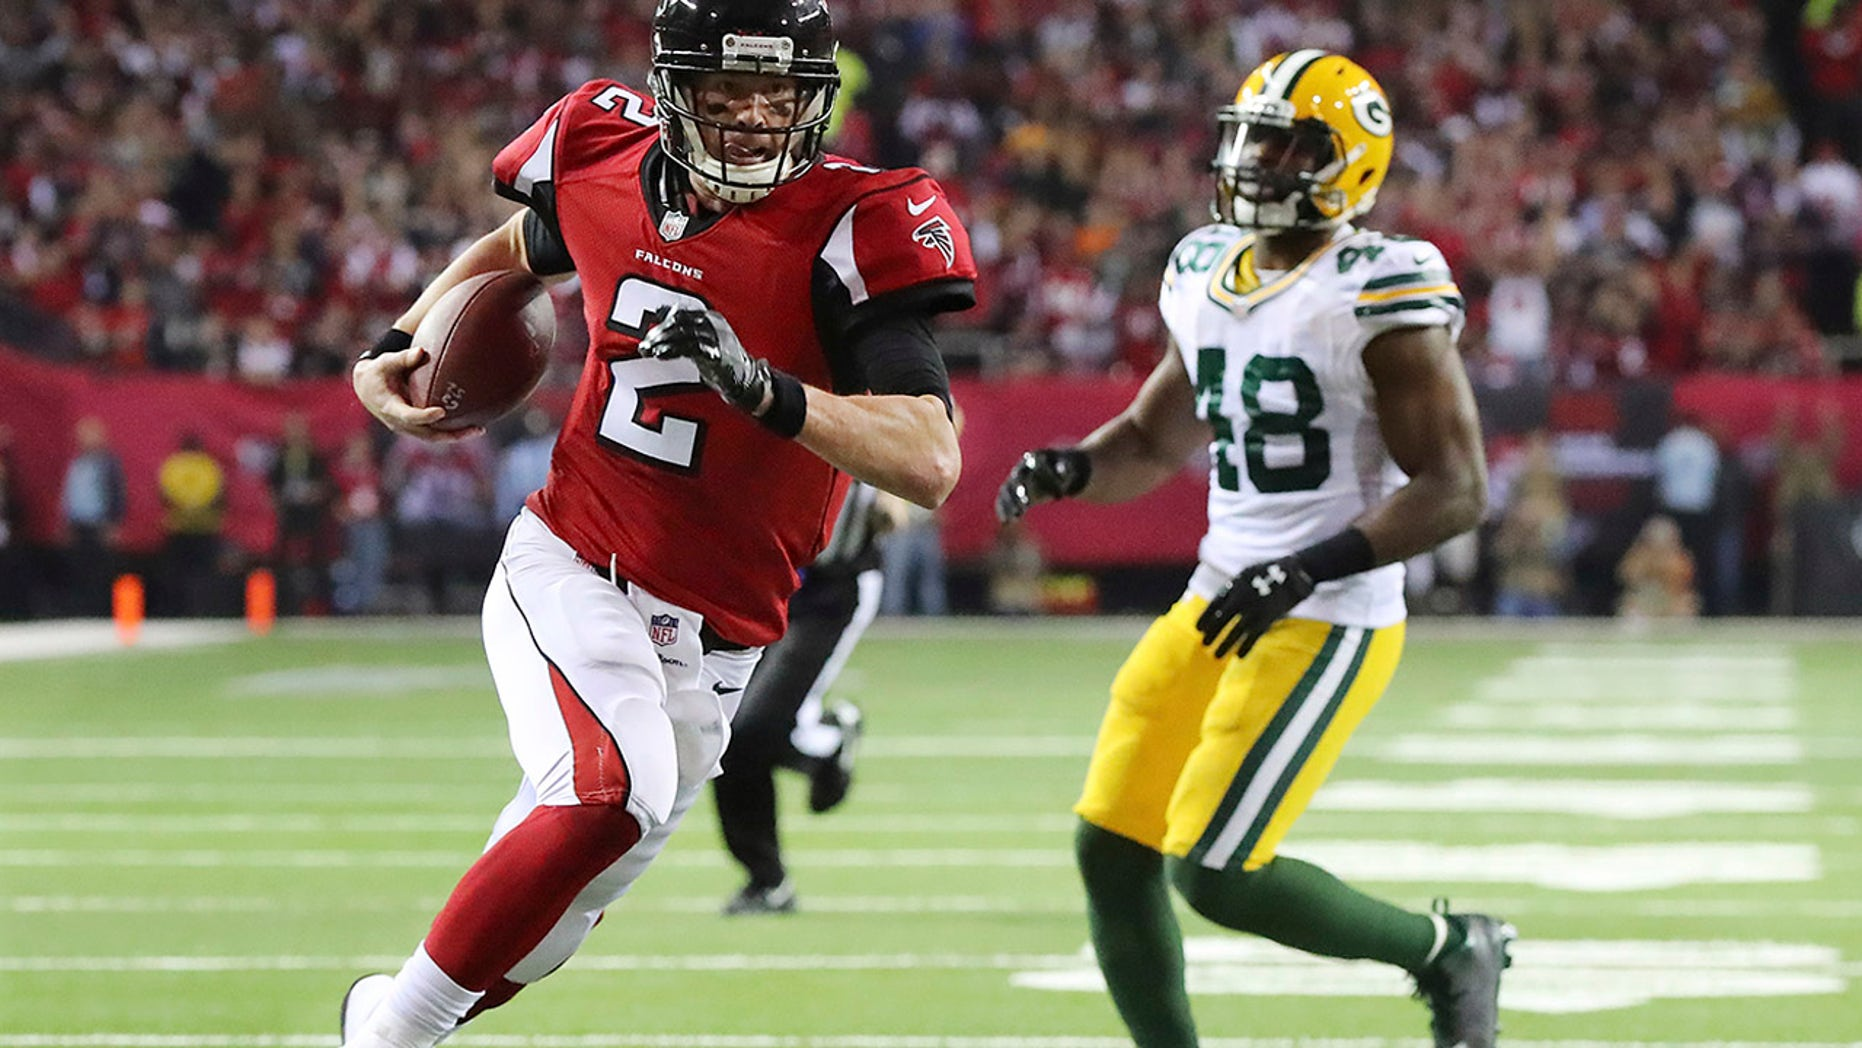 Jan. 22, 2017: Atlanta Falcons' Matt Ryan runs for a touchdown during the first half of the NFL football NFC championship game against the Green Bay Packers in Atlanta.